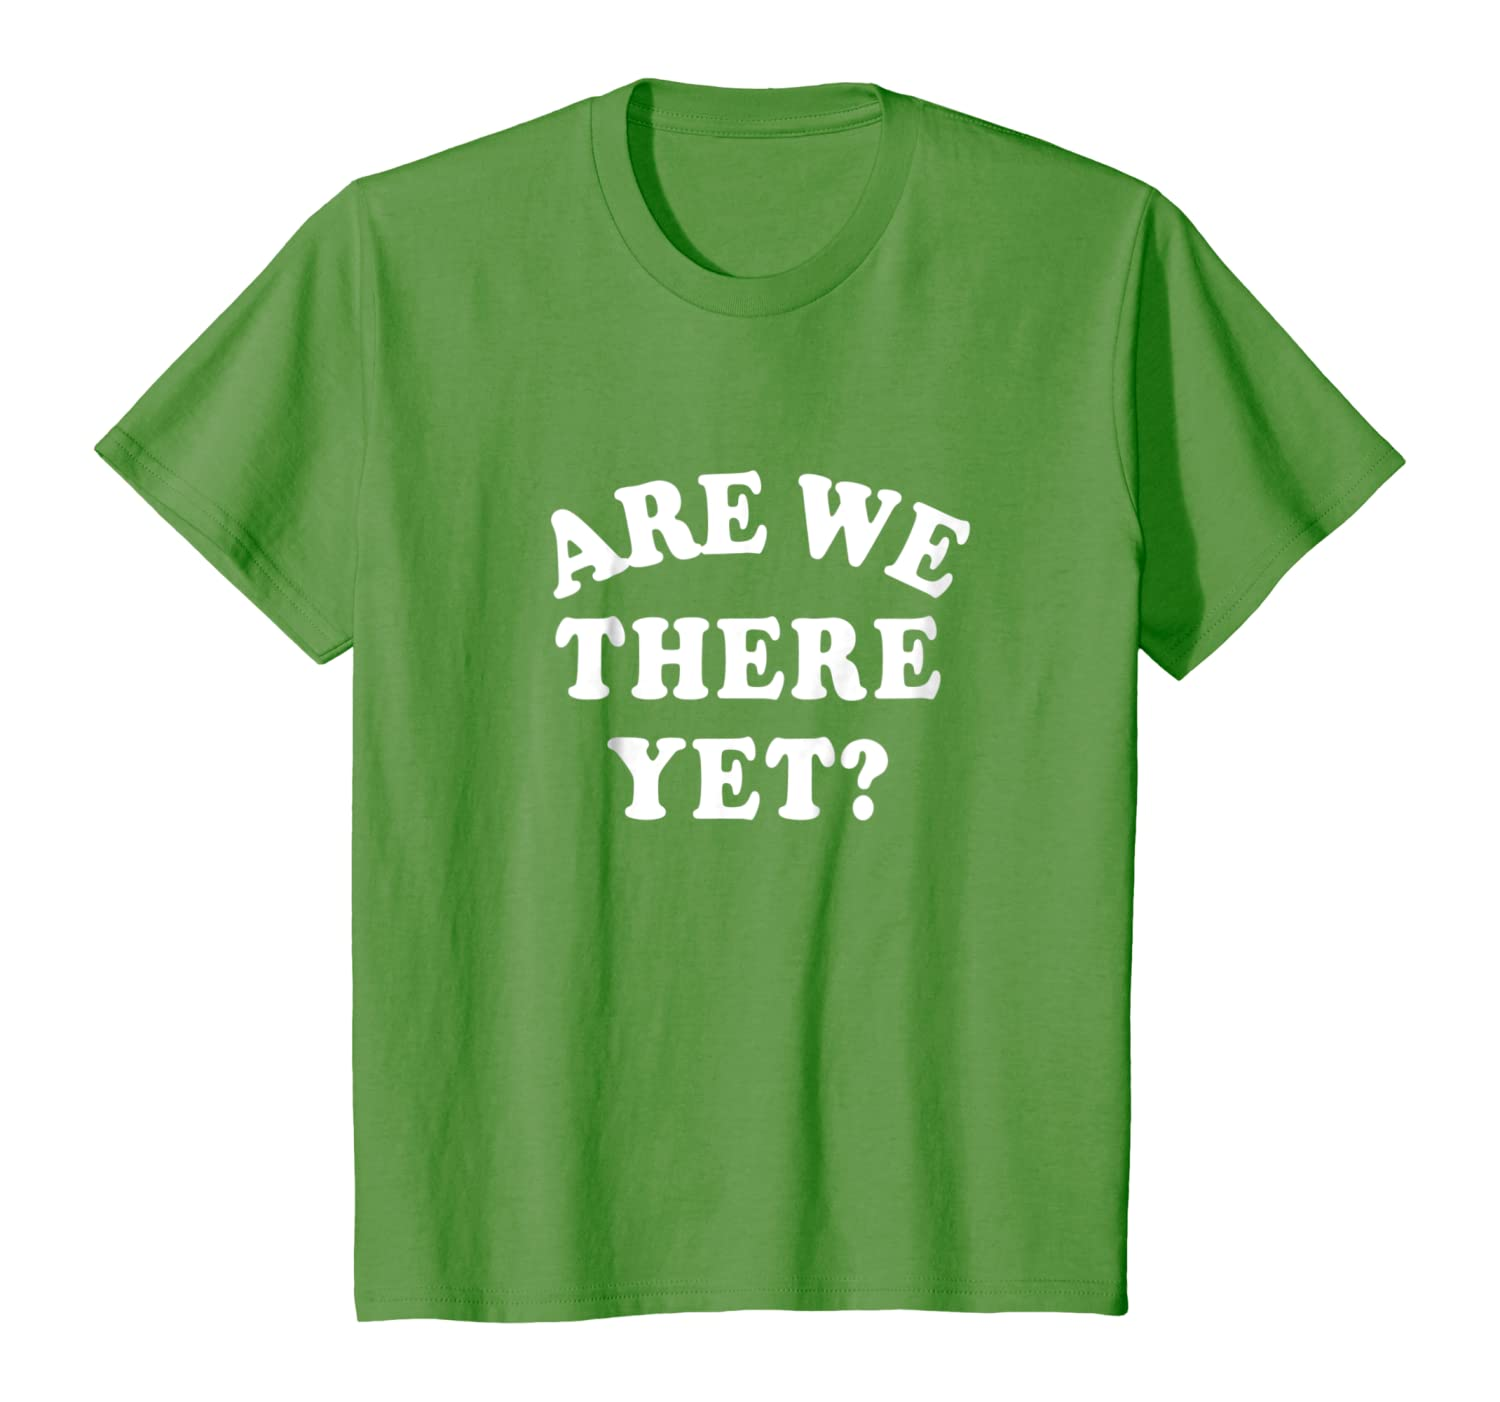 Are We There Yet and Youth T-Shirt for Men Women